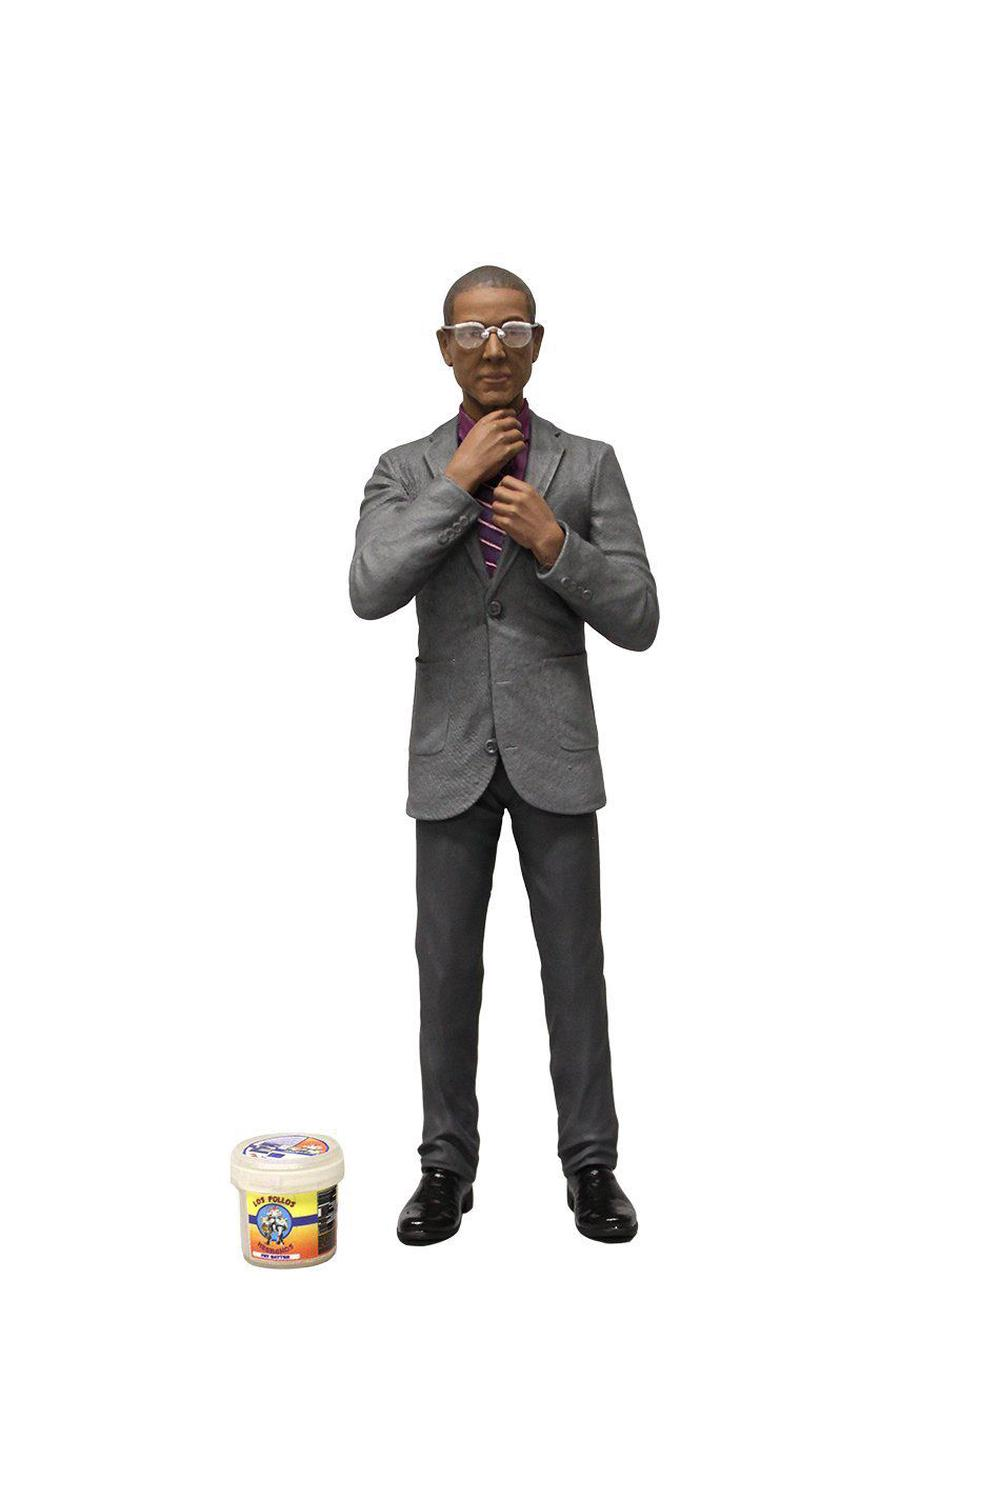 Mezco Toyz Breaking Bad - Gus Fring 6 inch Figure